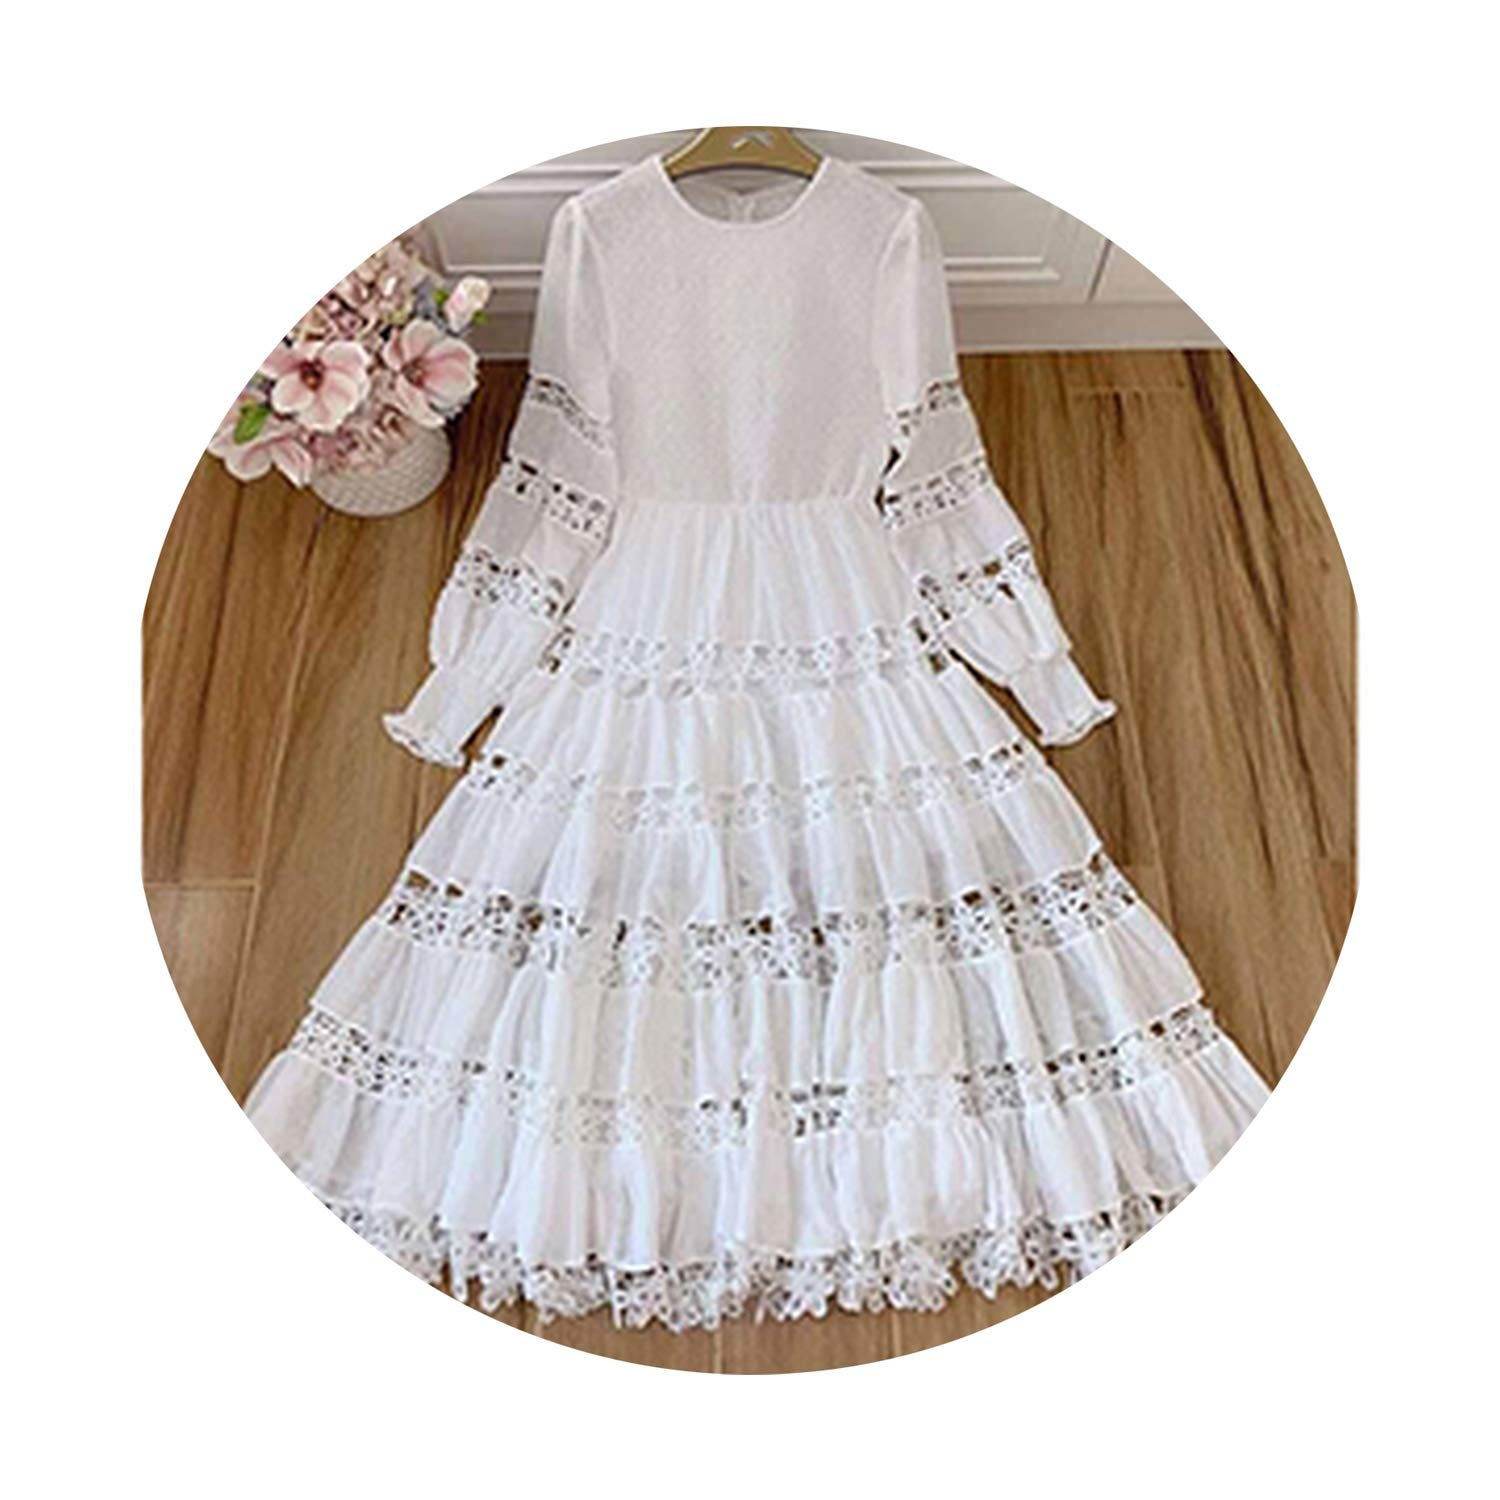 White Pinkstar Vacation Hollow Out Party Cotton Dresses ONeck Floral Lantern Sleeve Simplee Dress